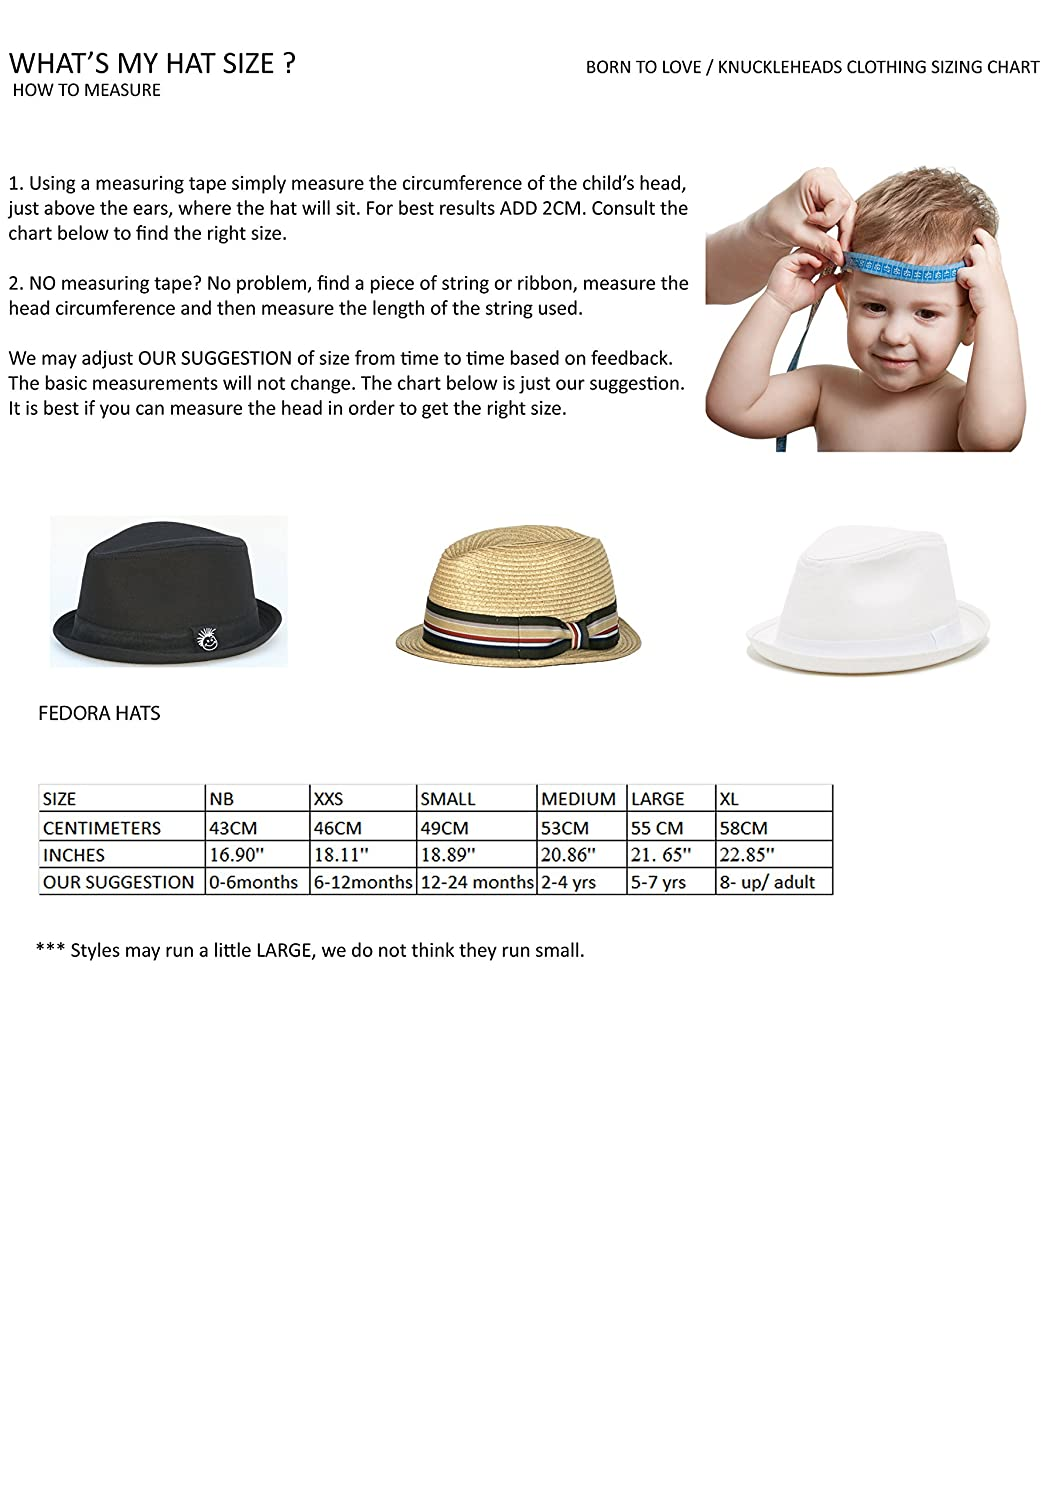 fcdd6d52775 Amazon.com  Born to Love - Baby Kids Gray Fedora with Black Band Trilby  Summer Hat  Clothing